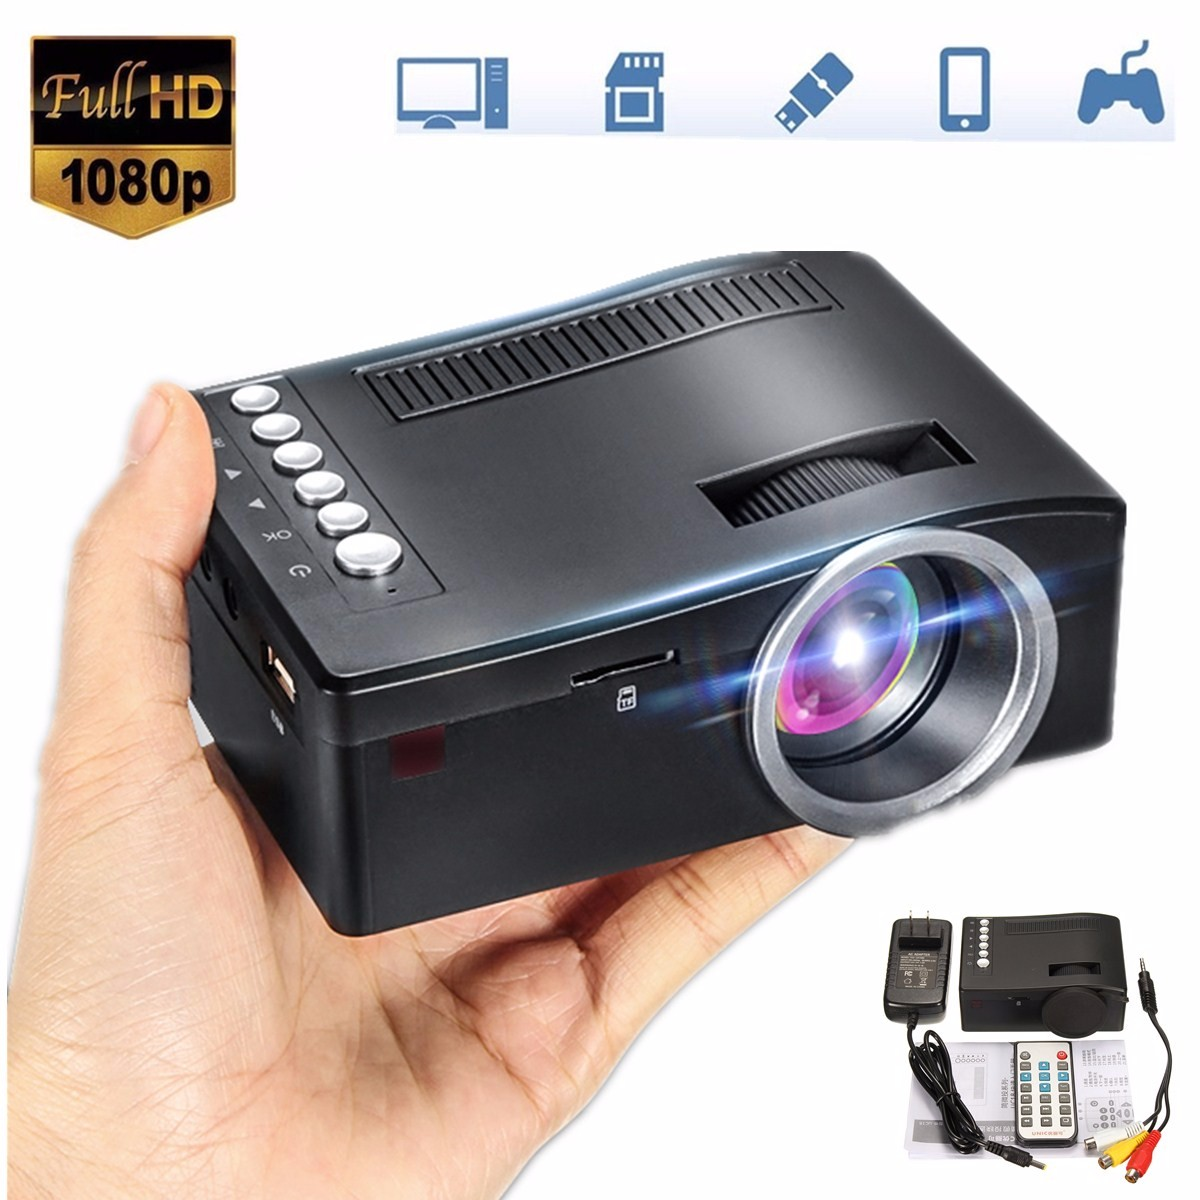 Mini Cinema Home Theater System 1080P HD Multimedia Projector TV AV USB TF HDMI PC LED Digital Pocket Home Projector Home 2016 newest portable mini hd led projector home cinema theater for pc page 3